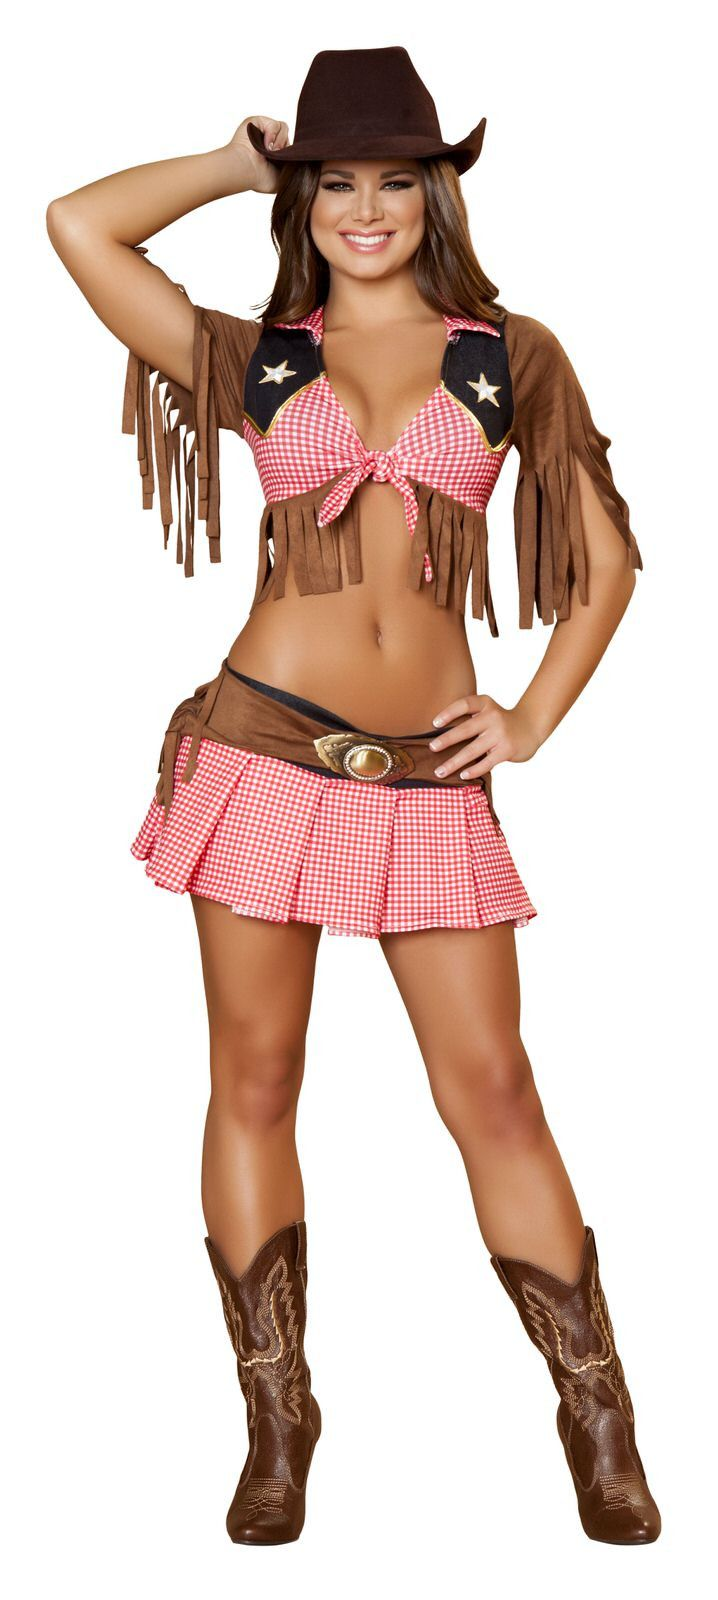 Two Piece Sassy CowgirlCostume Includes The Tie Top With Fringe And Patch Detail With Matching Pleated Skirt With Belt. Shop this now YourLaMode #sexy #western #costumes #women #clothinge